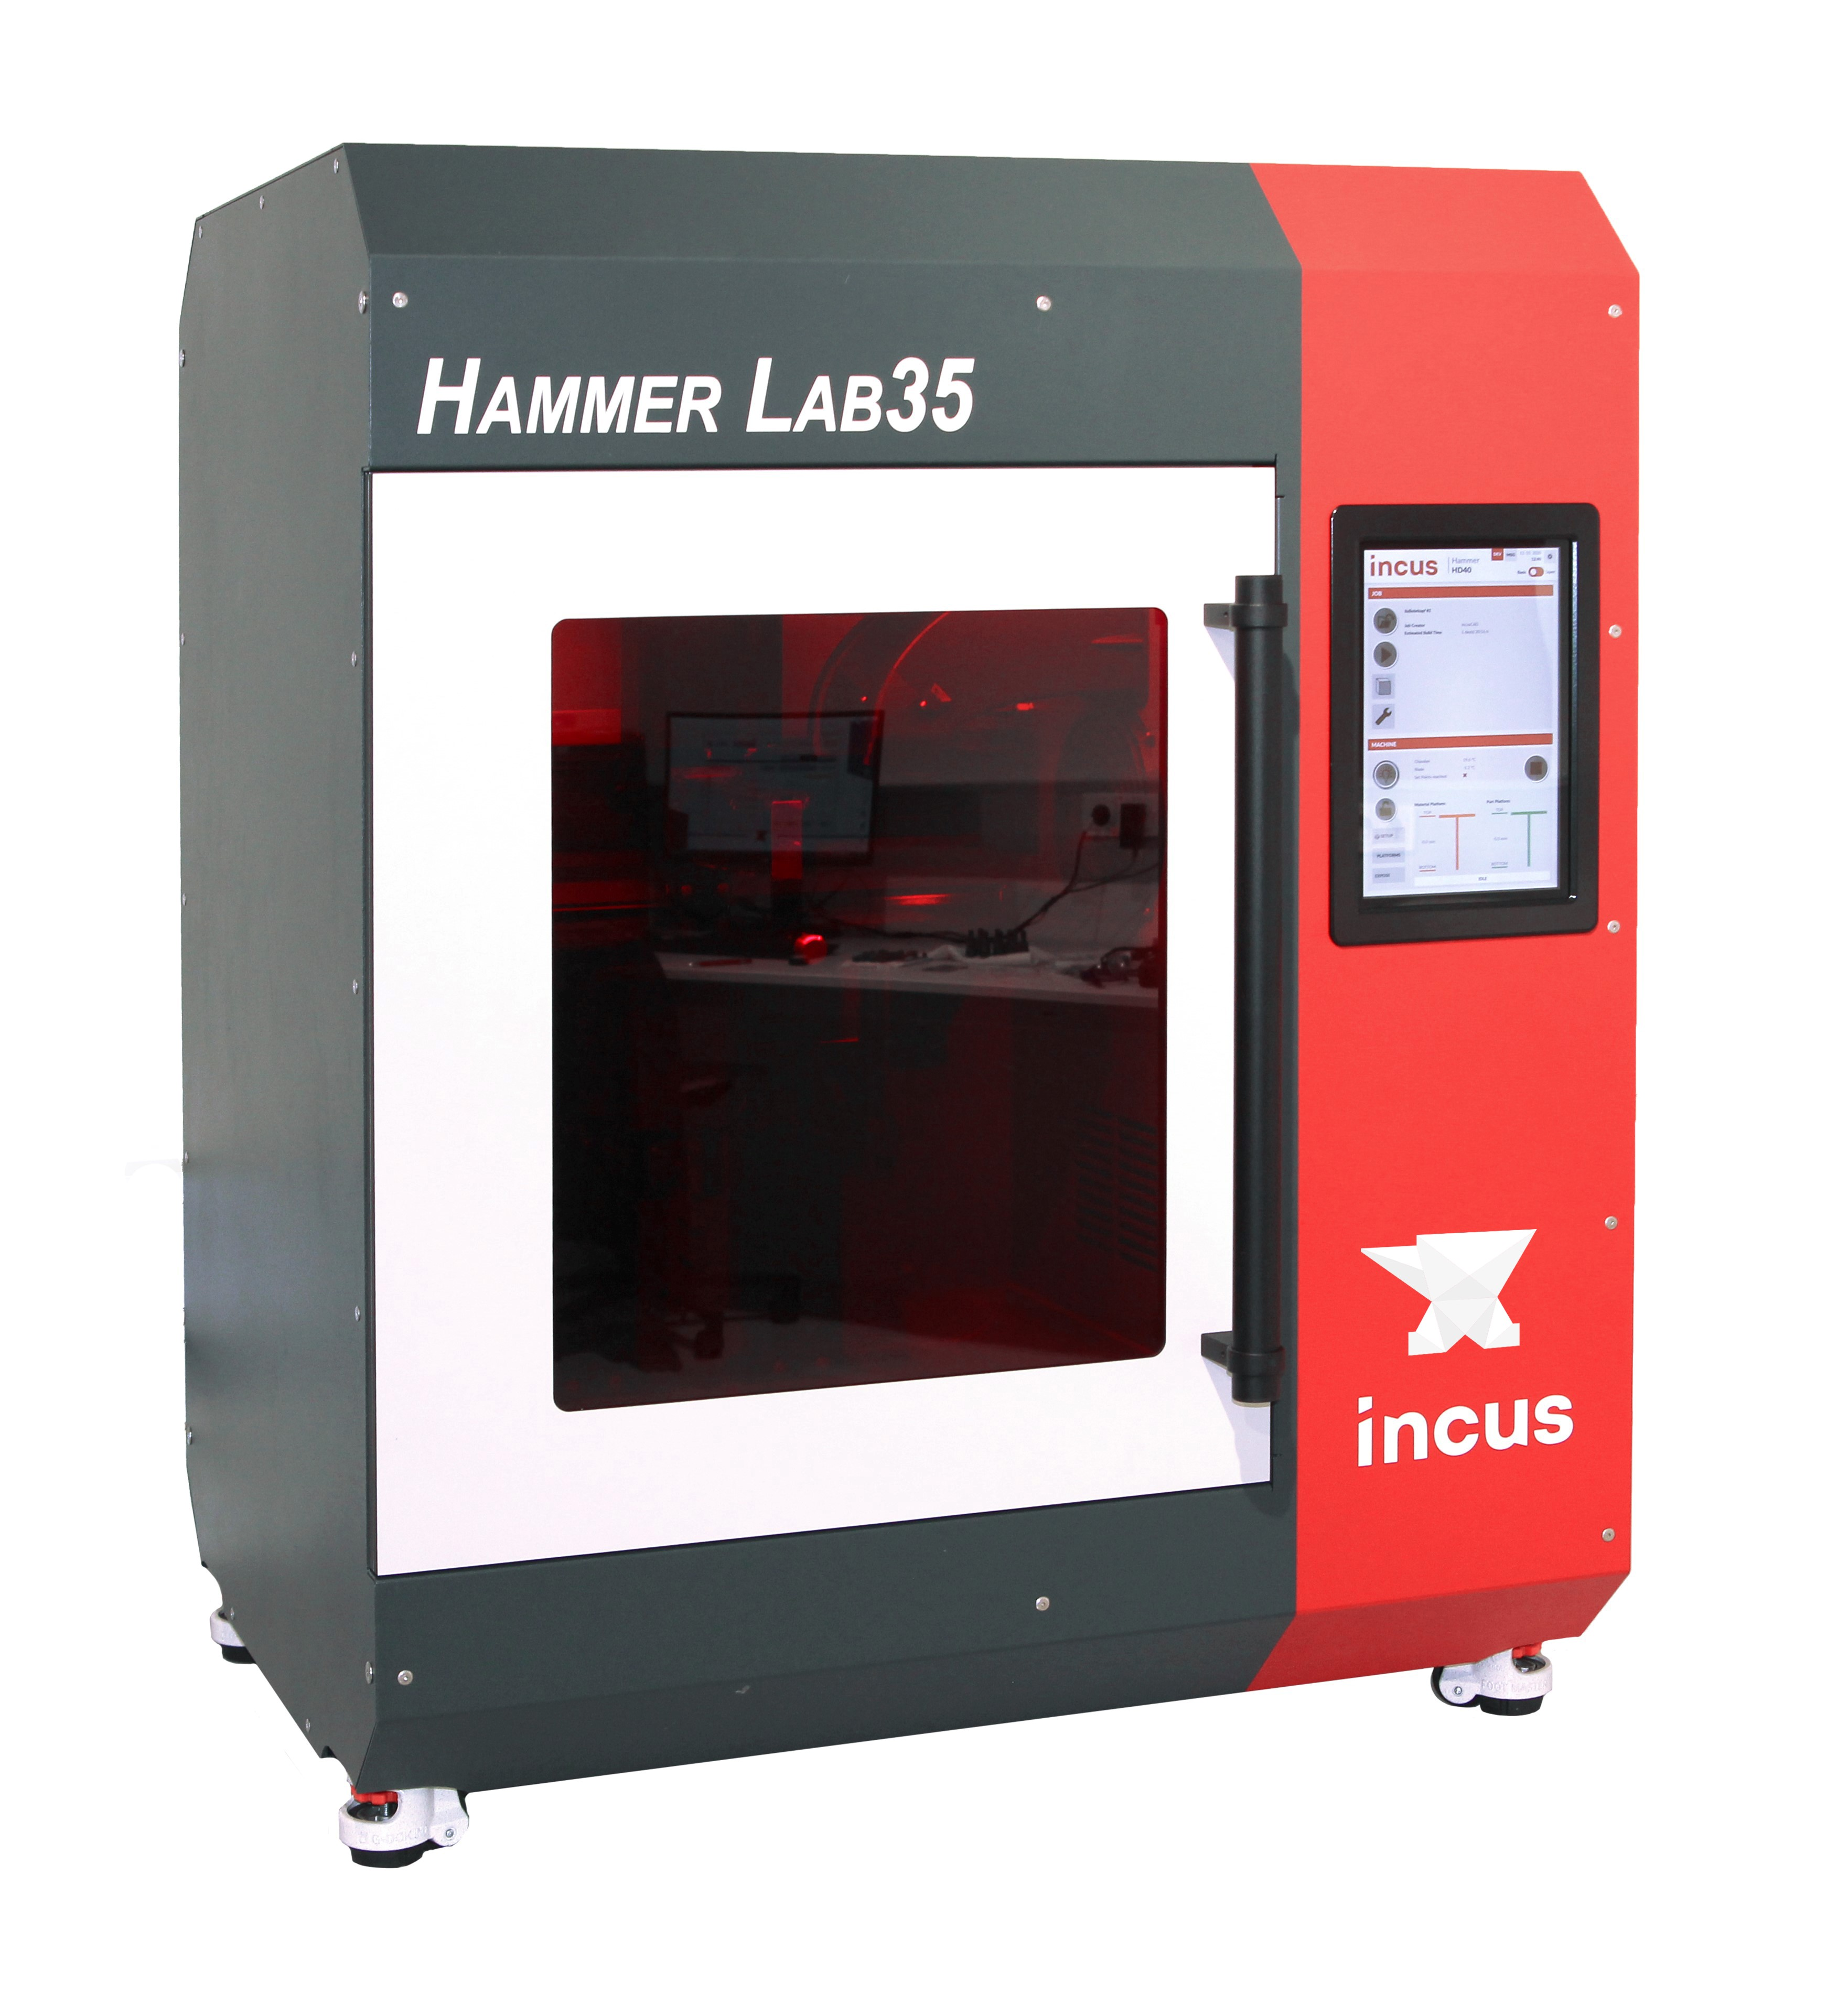 The Hammer Lab35. Image by Incus GmbH.